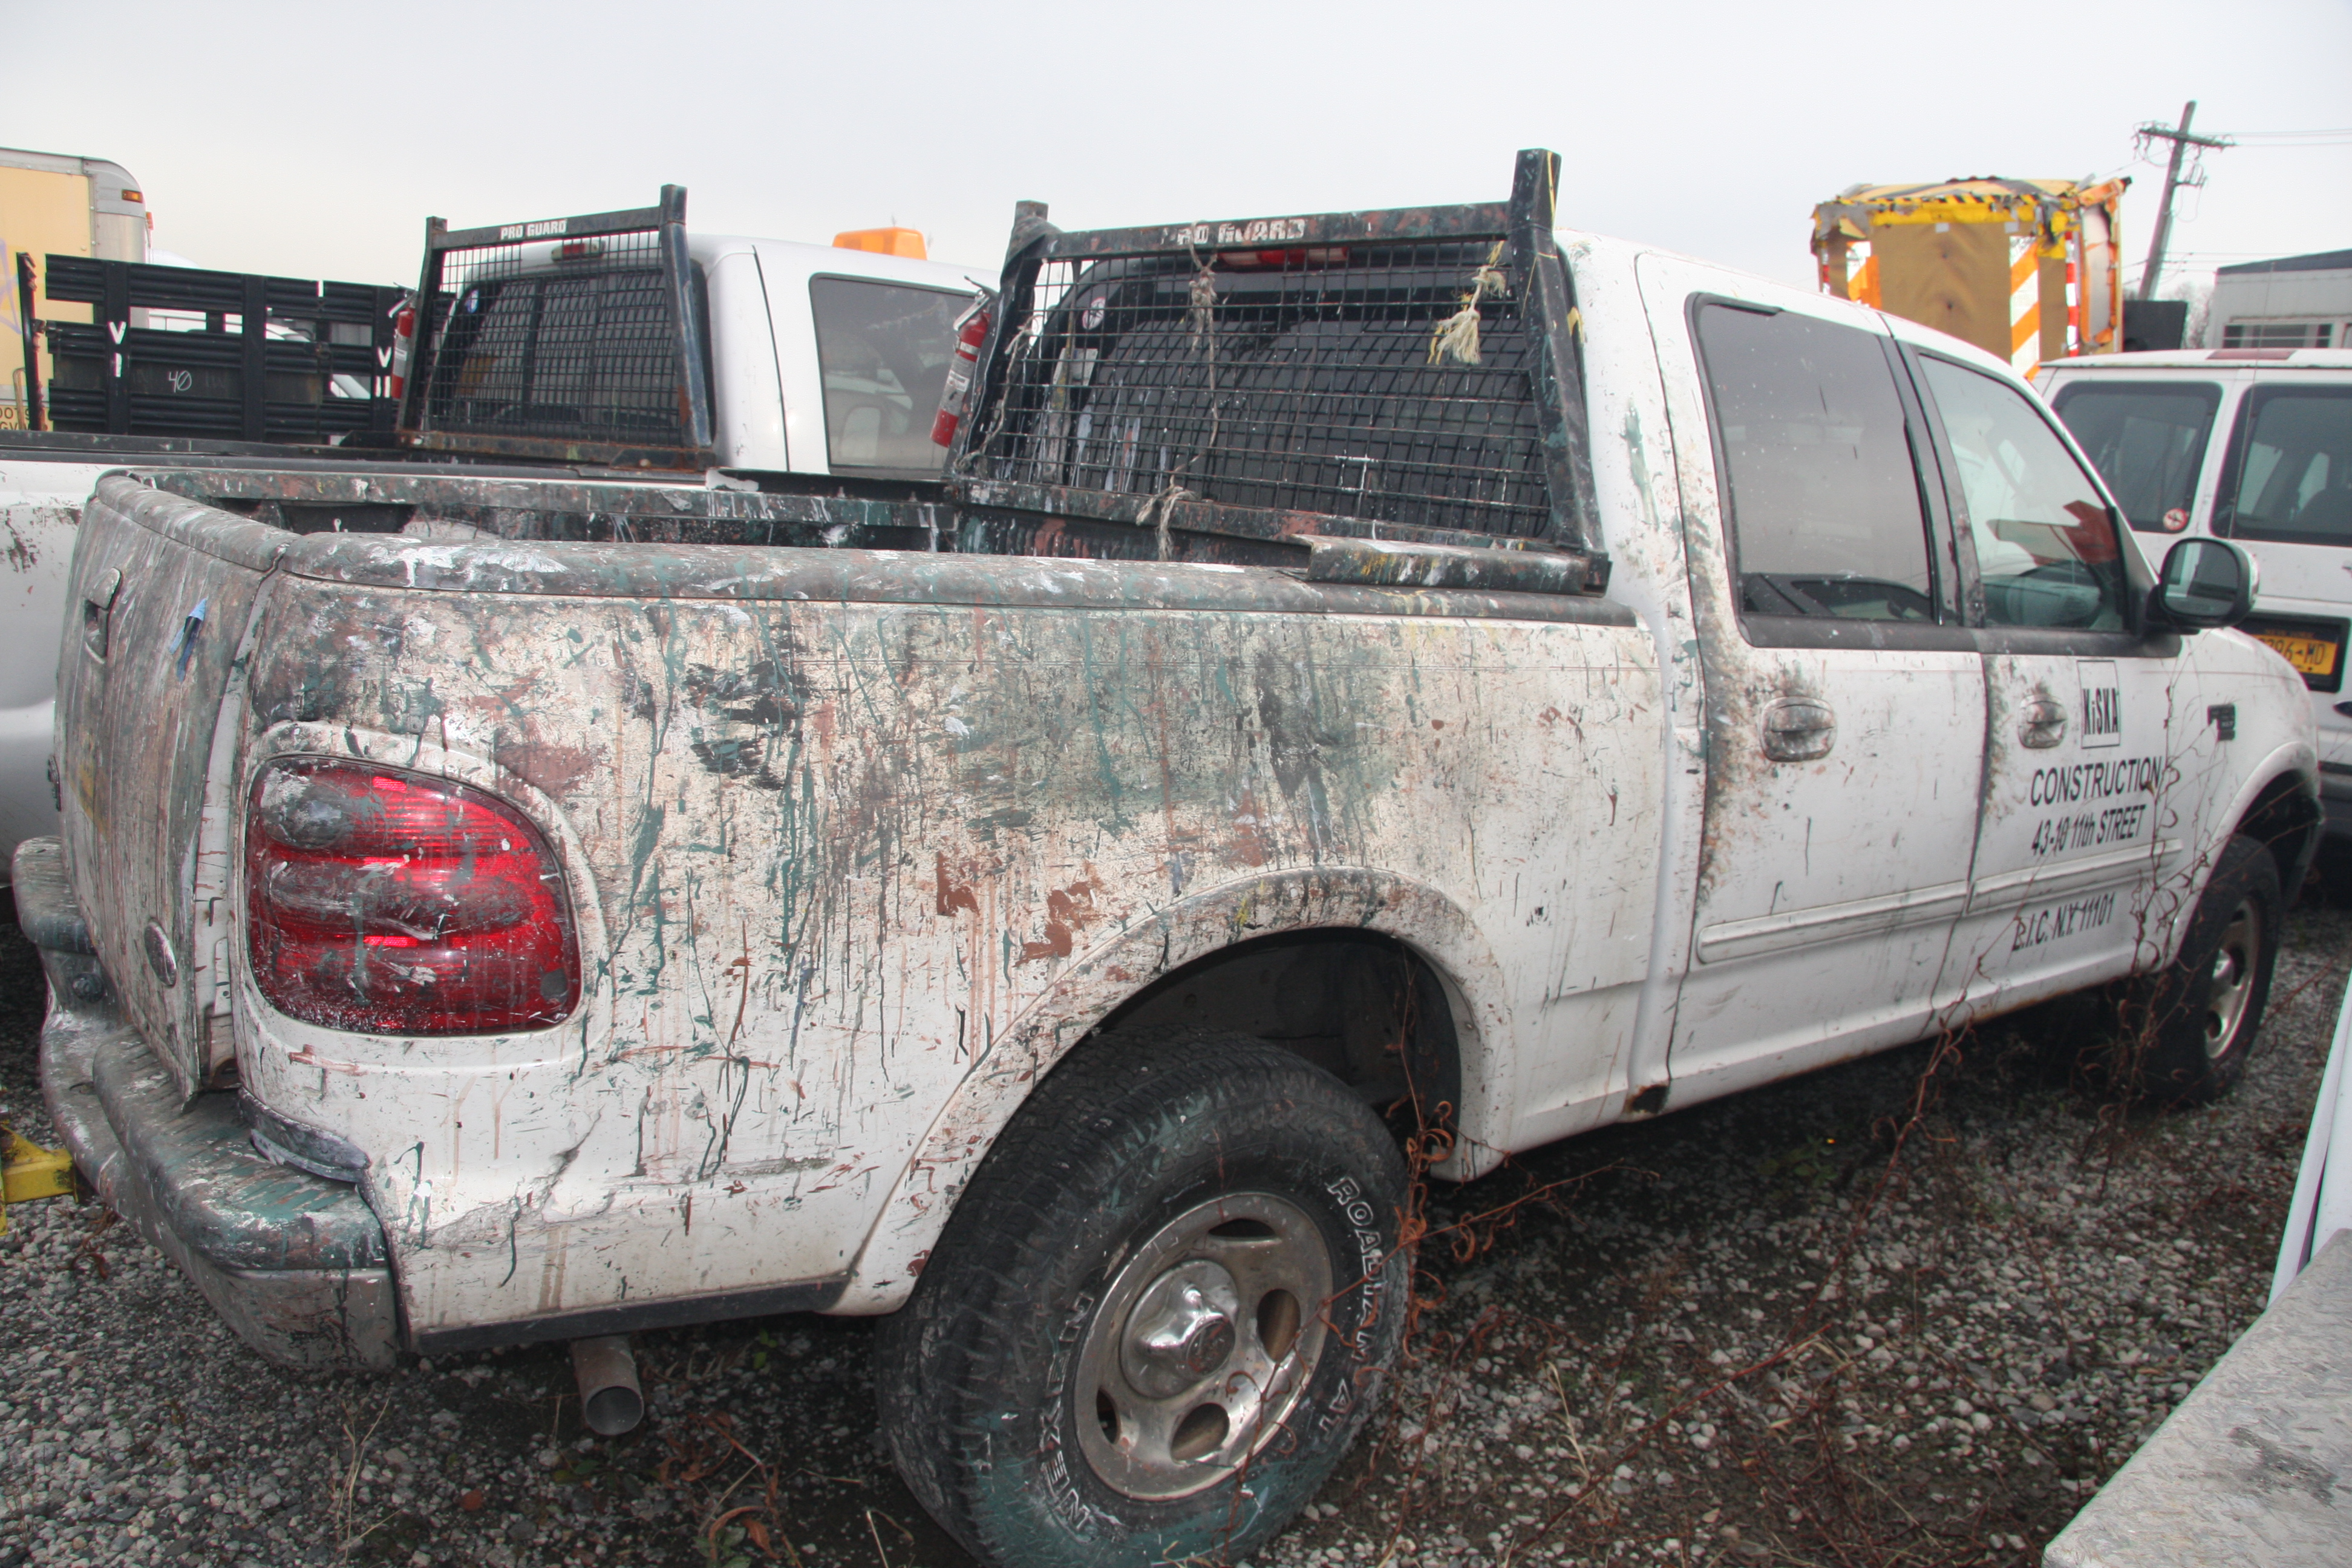 Lot 27 - 2003 FORD F-150 XLT PICKUP TRUCK, CREW CAB, TRITON V8, AUTOMATIC, APPROXIMATELY 214,220 MILES,